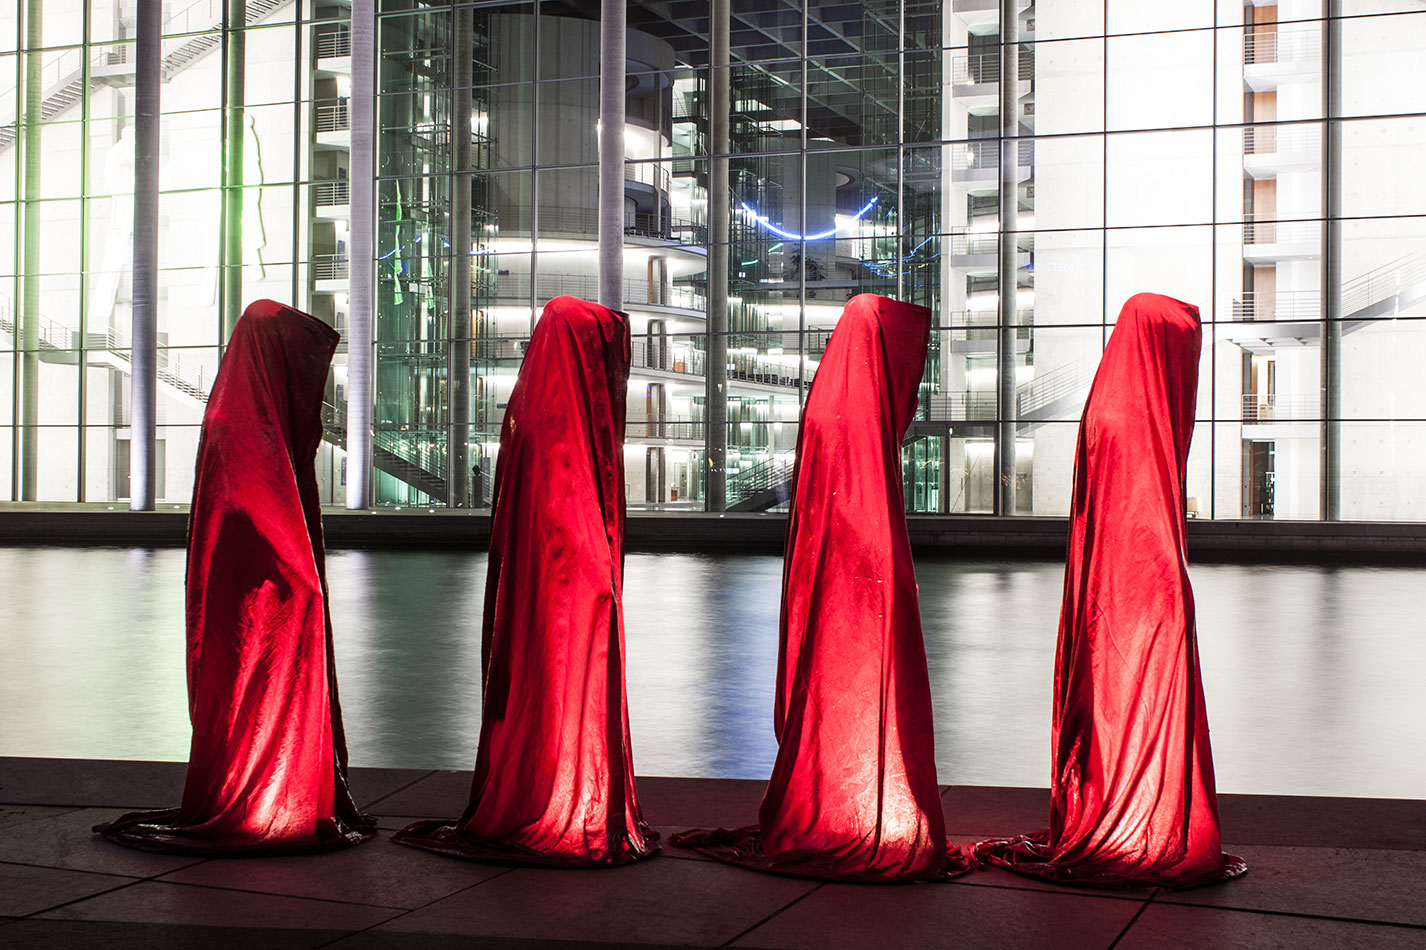 25-years-wallfall-berlin-germany-contemporary-fine-art-show-arts-design-sculpture-public-arts-arte-antique-guardians-of-time-manfred-kili-kielnhofer-4695